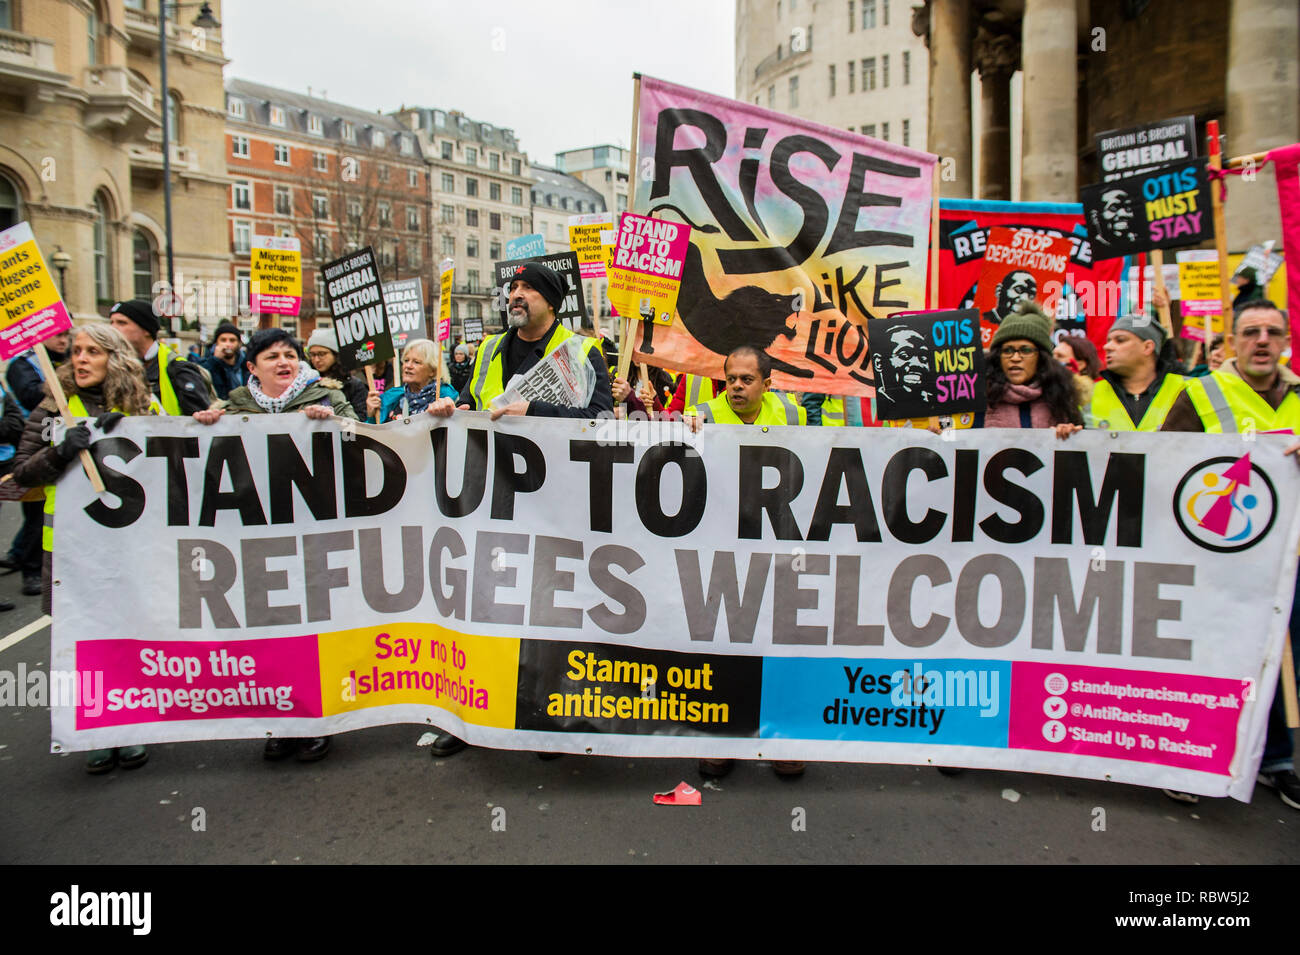 London, UK. 12th January, 2019. Britain is Broken - General Election Now! Started outside the BBC Portland Place. A UK version of the Yellow Vest protests organised  by The People's Assembly Against Austerity. Campaigning against all cuts, not less or slower cuts. No privatisation. No racist scapegoating. No evictions. Credit: Guy Bell/Alamy Live News - Stock Image